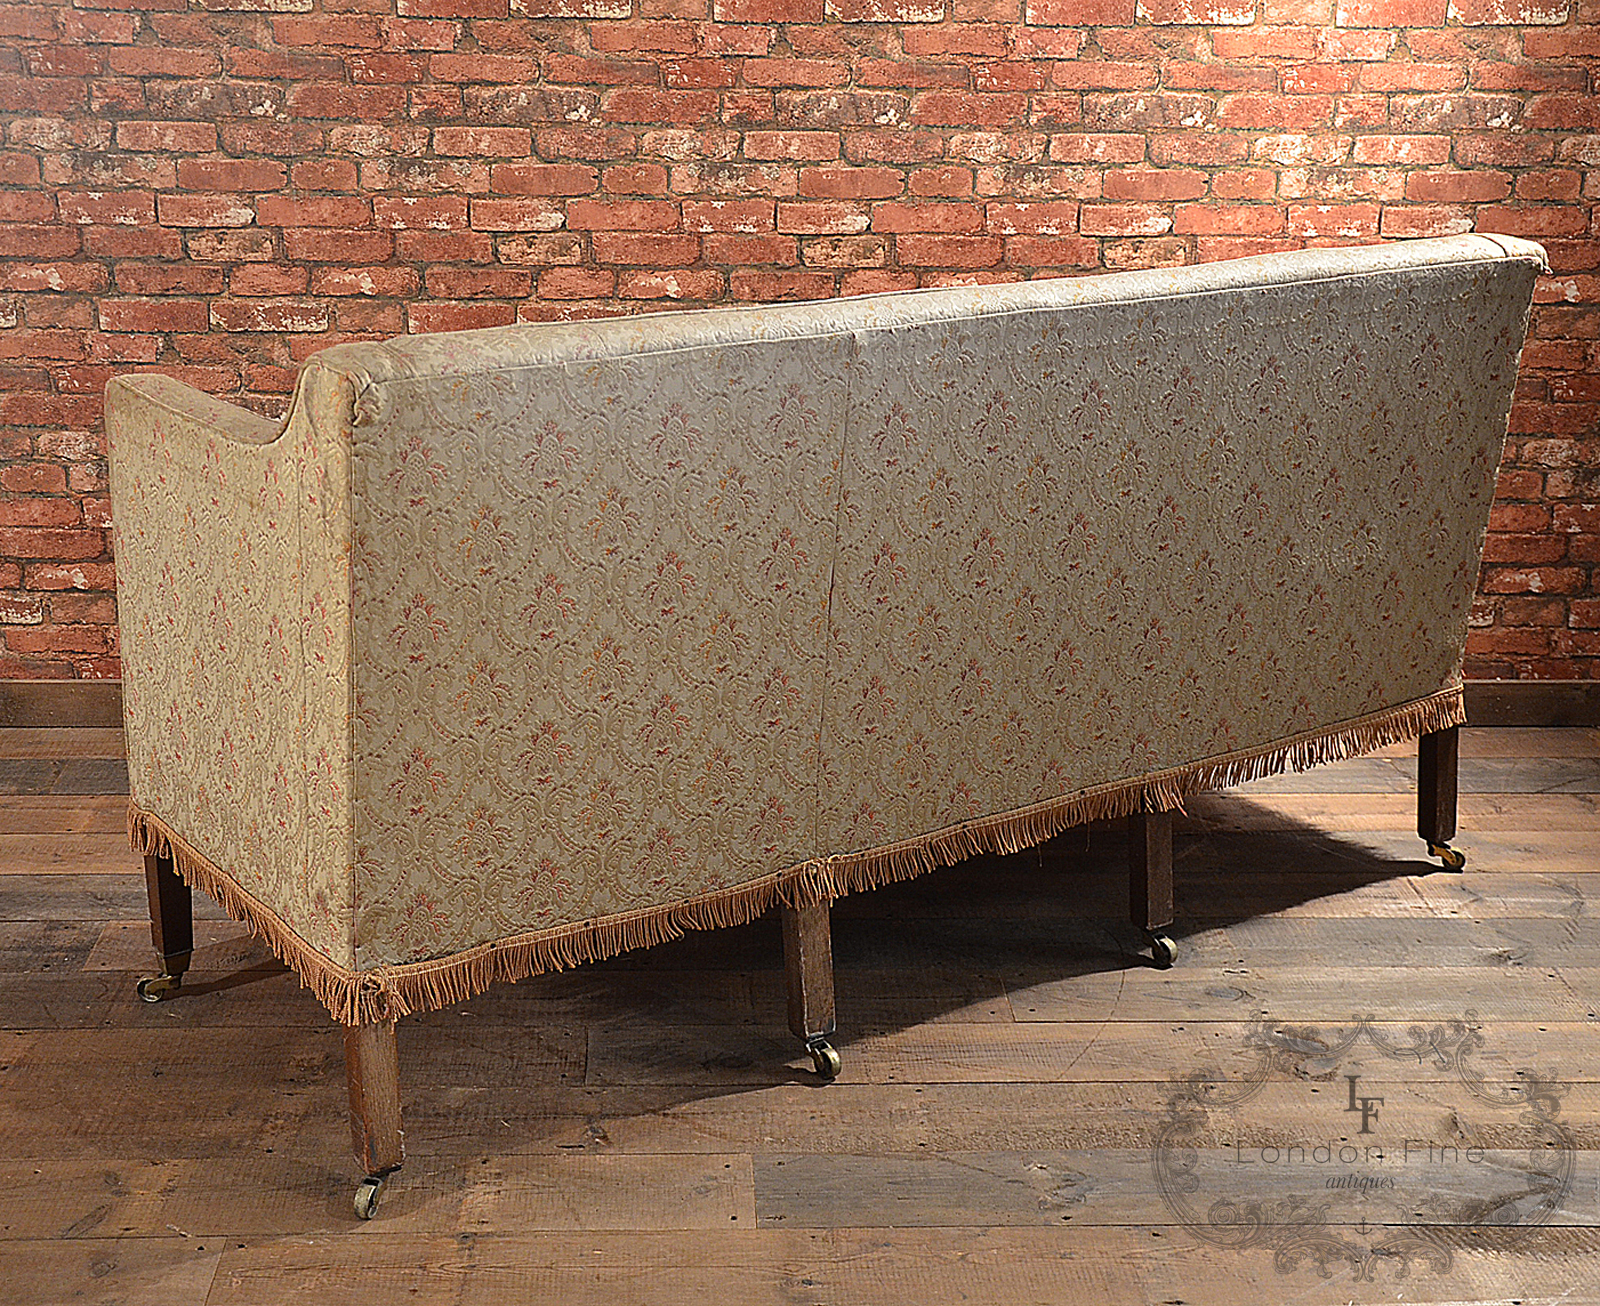 antique victorian sofas for sale sofa bed with thick mattress georgian high back english c 1800 3 or 4